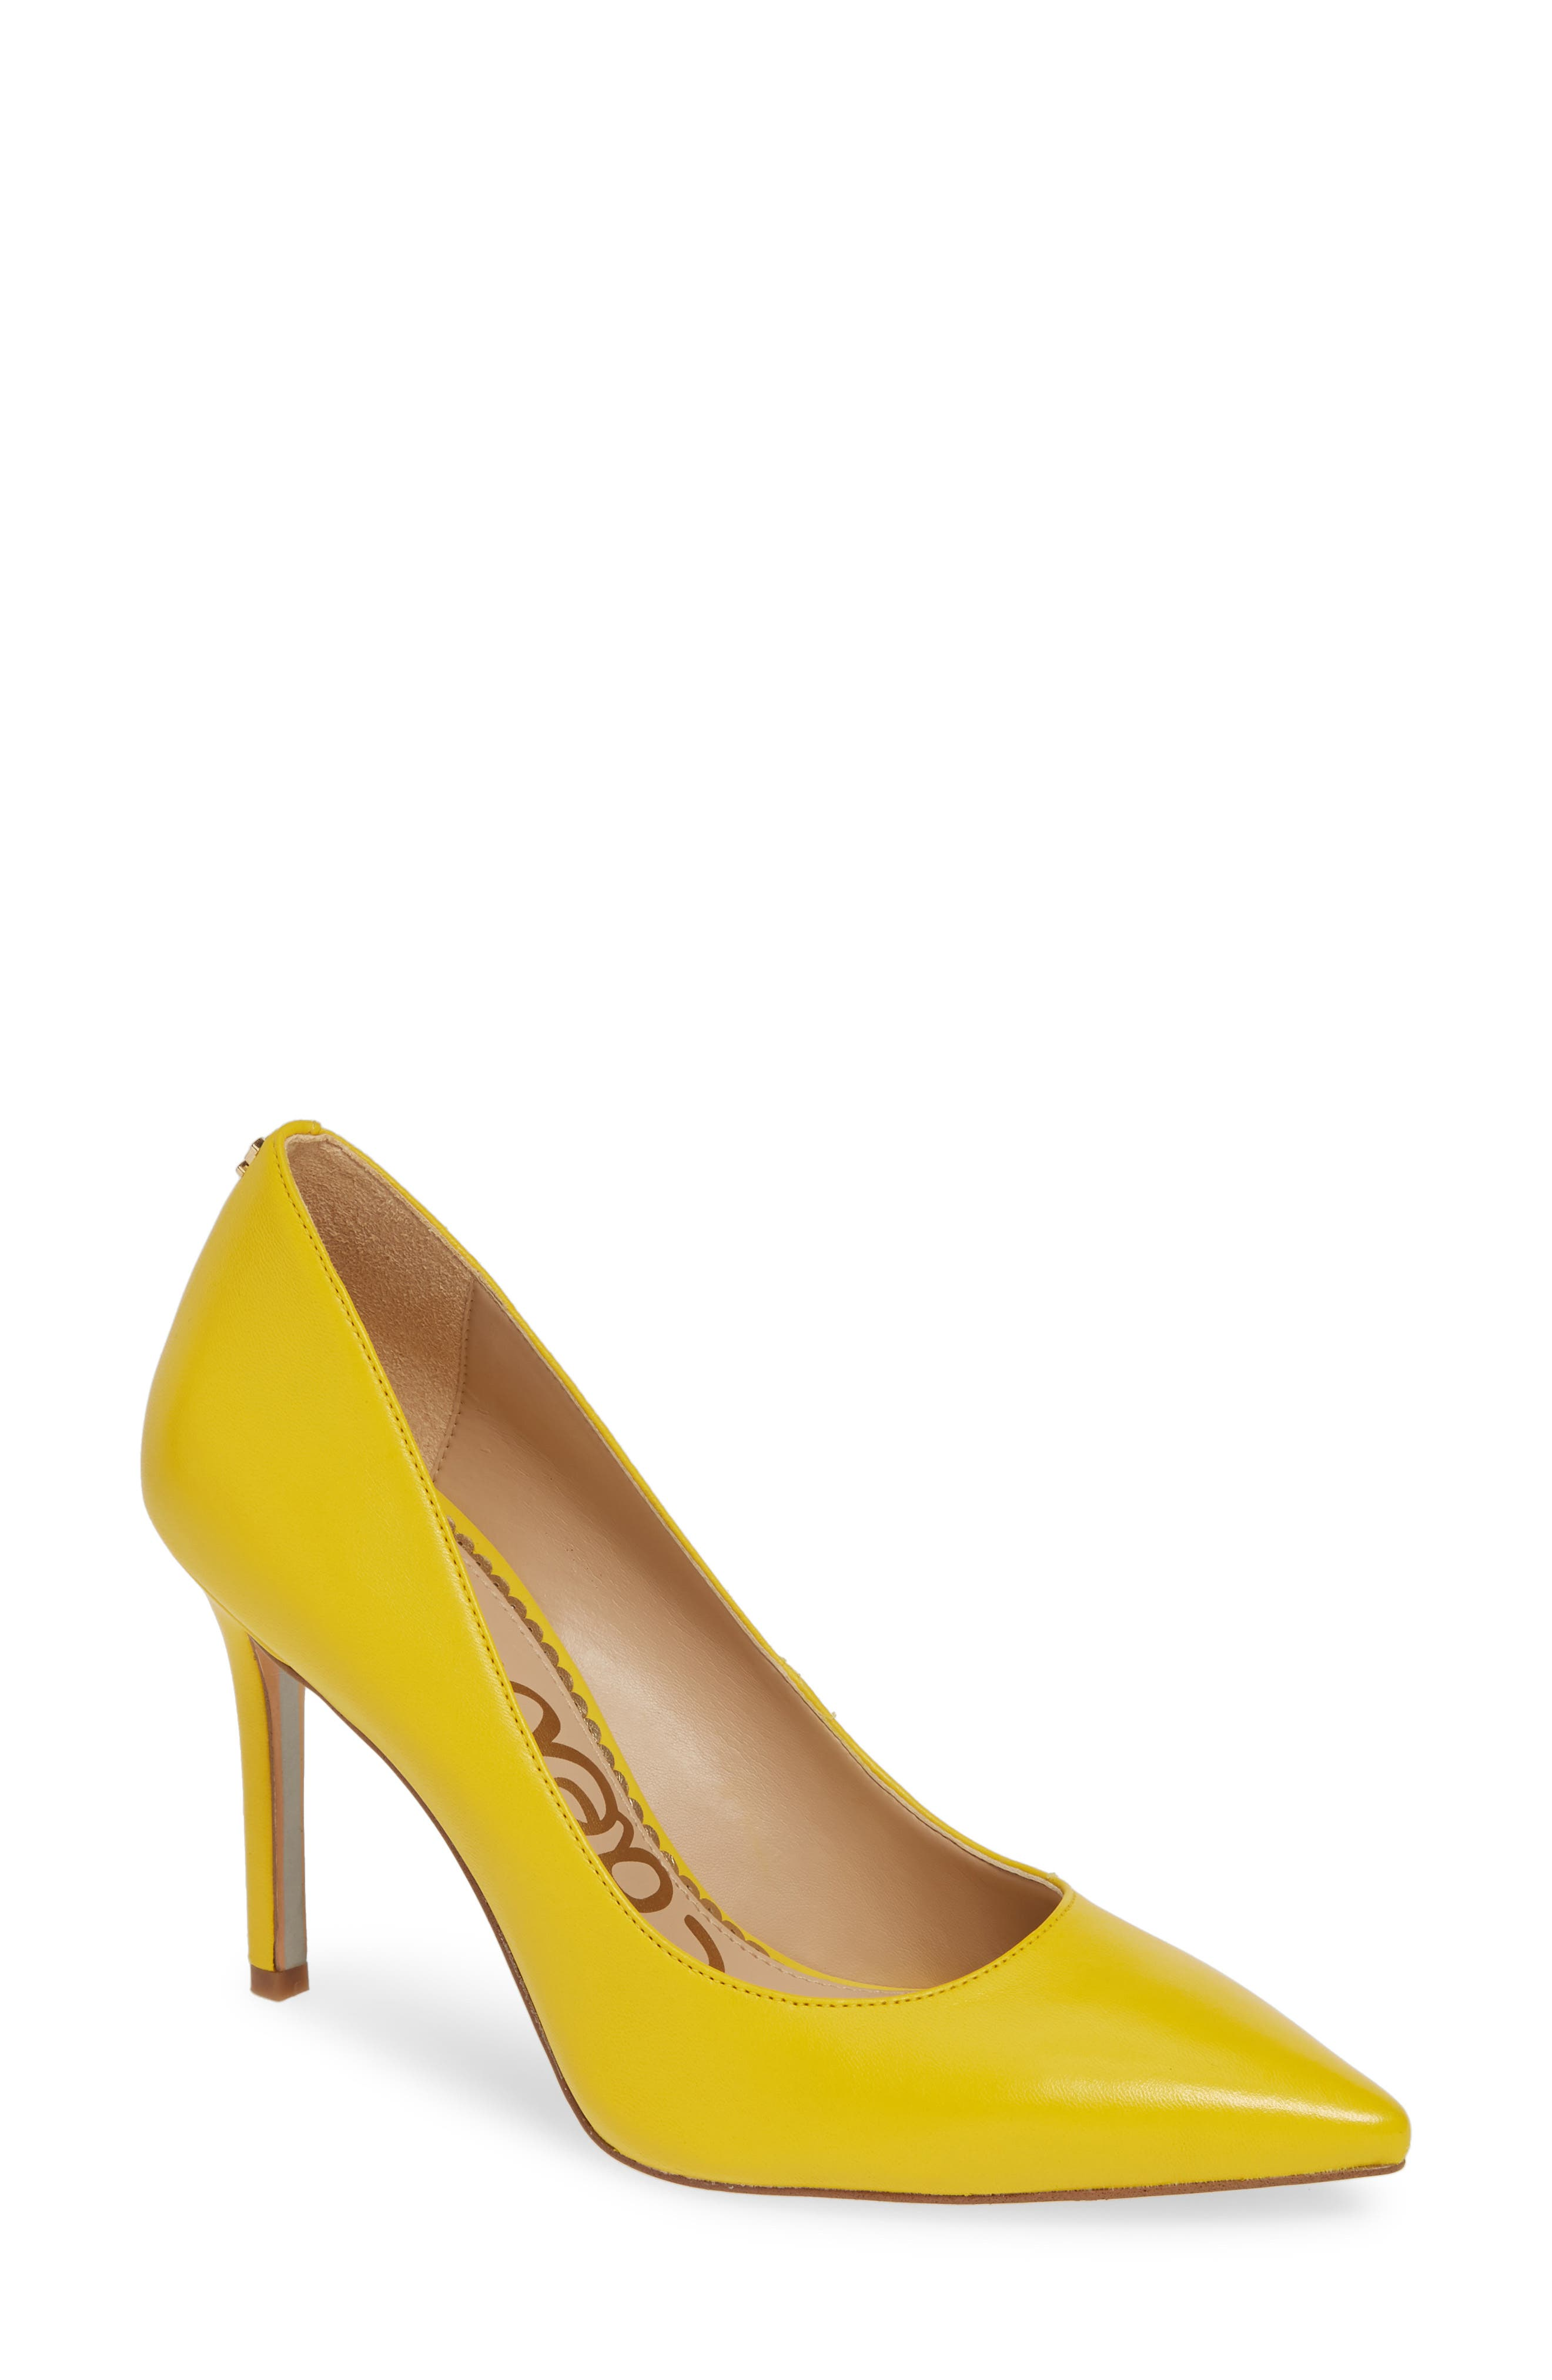 f7a95a9861c77 Sam Edelman Pumps